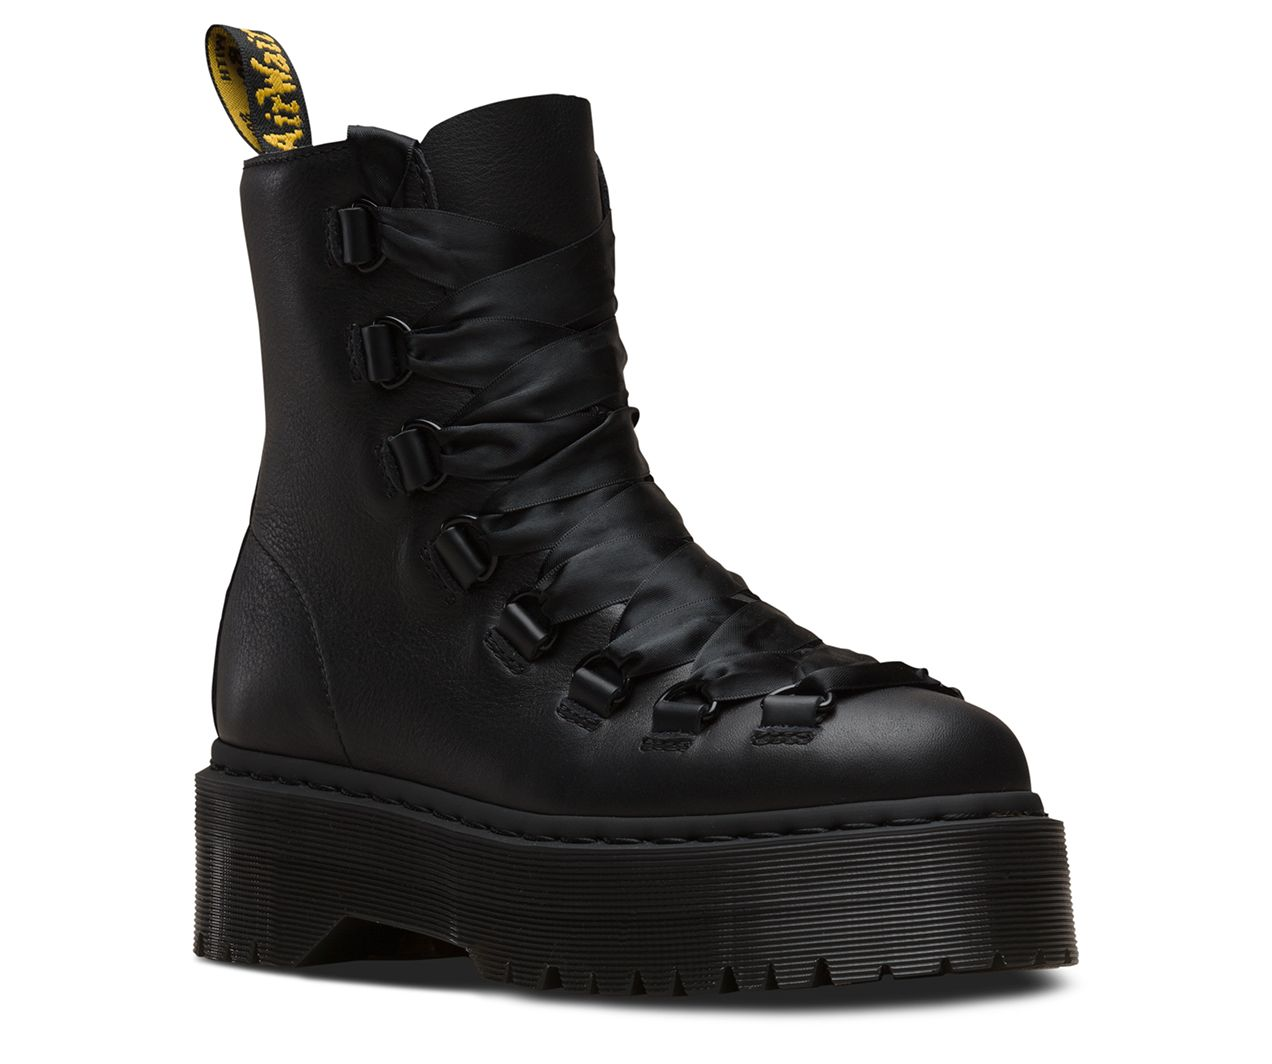 2422ef9598 DR MARTENS Trevonna in 2019 | Outfits | Shoes, Boots, Fashion shoes